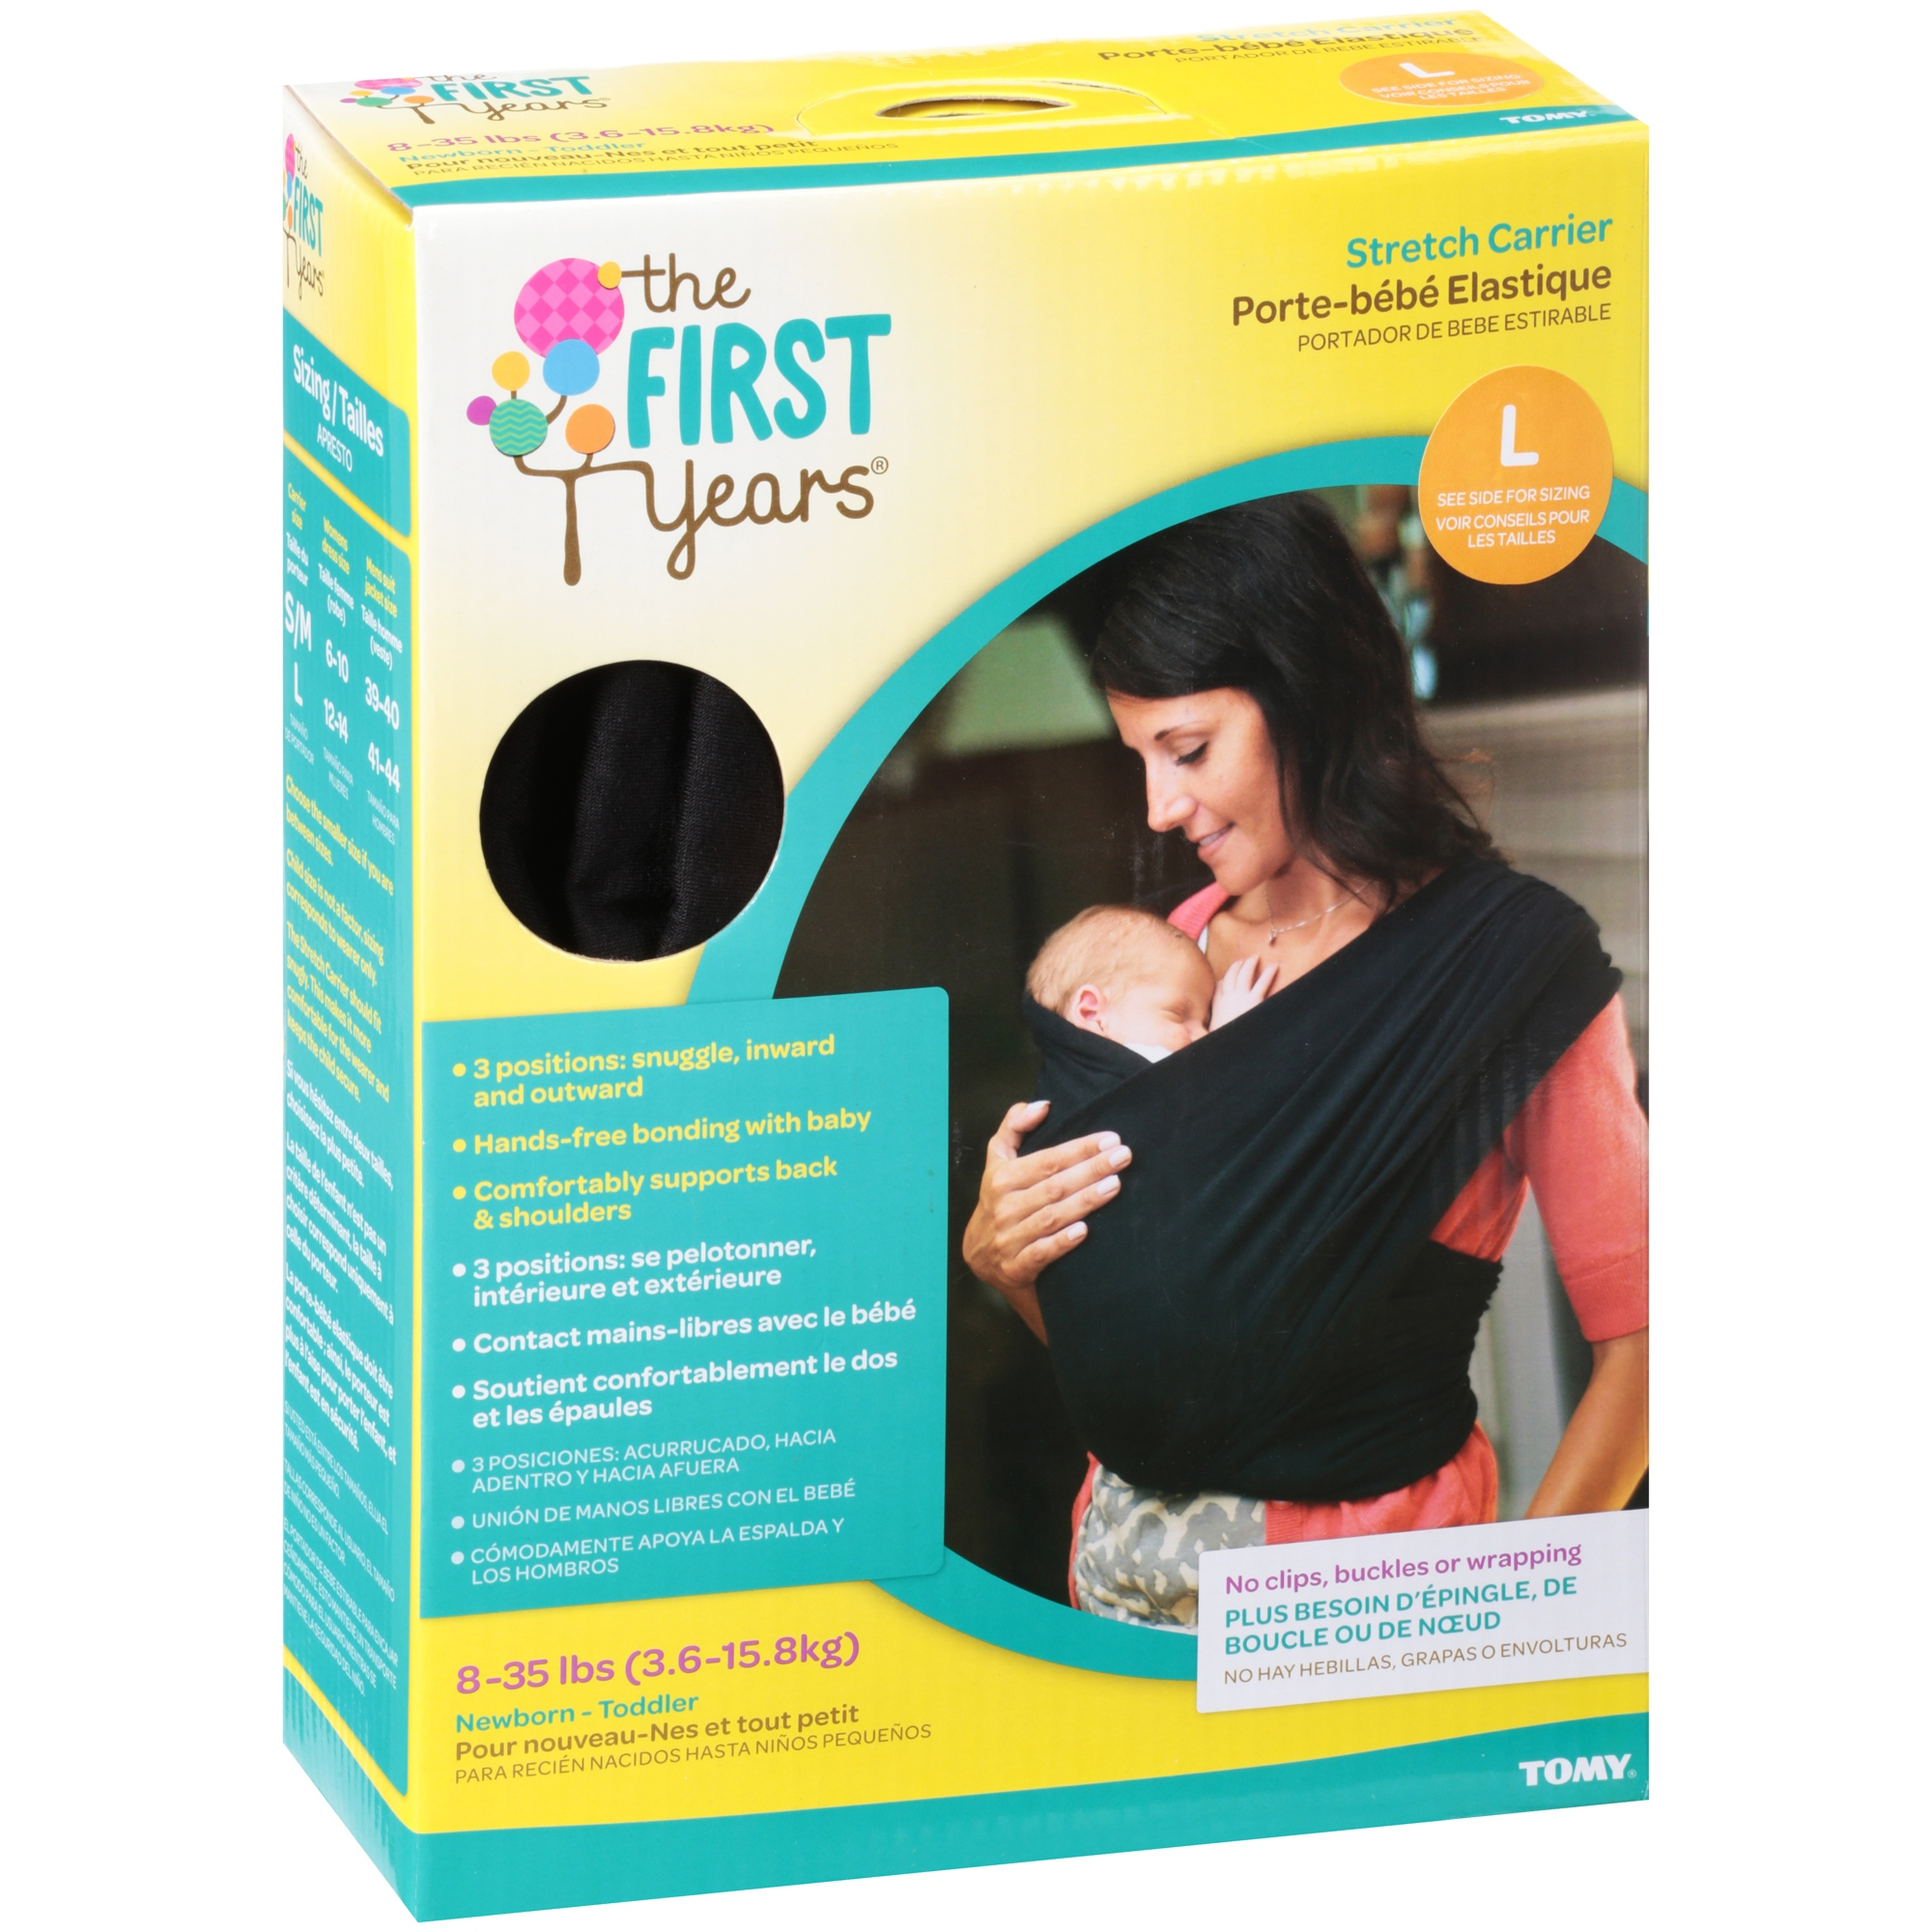 The First Years Large Stretch Carrier 2 pc Box